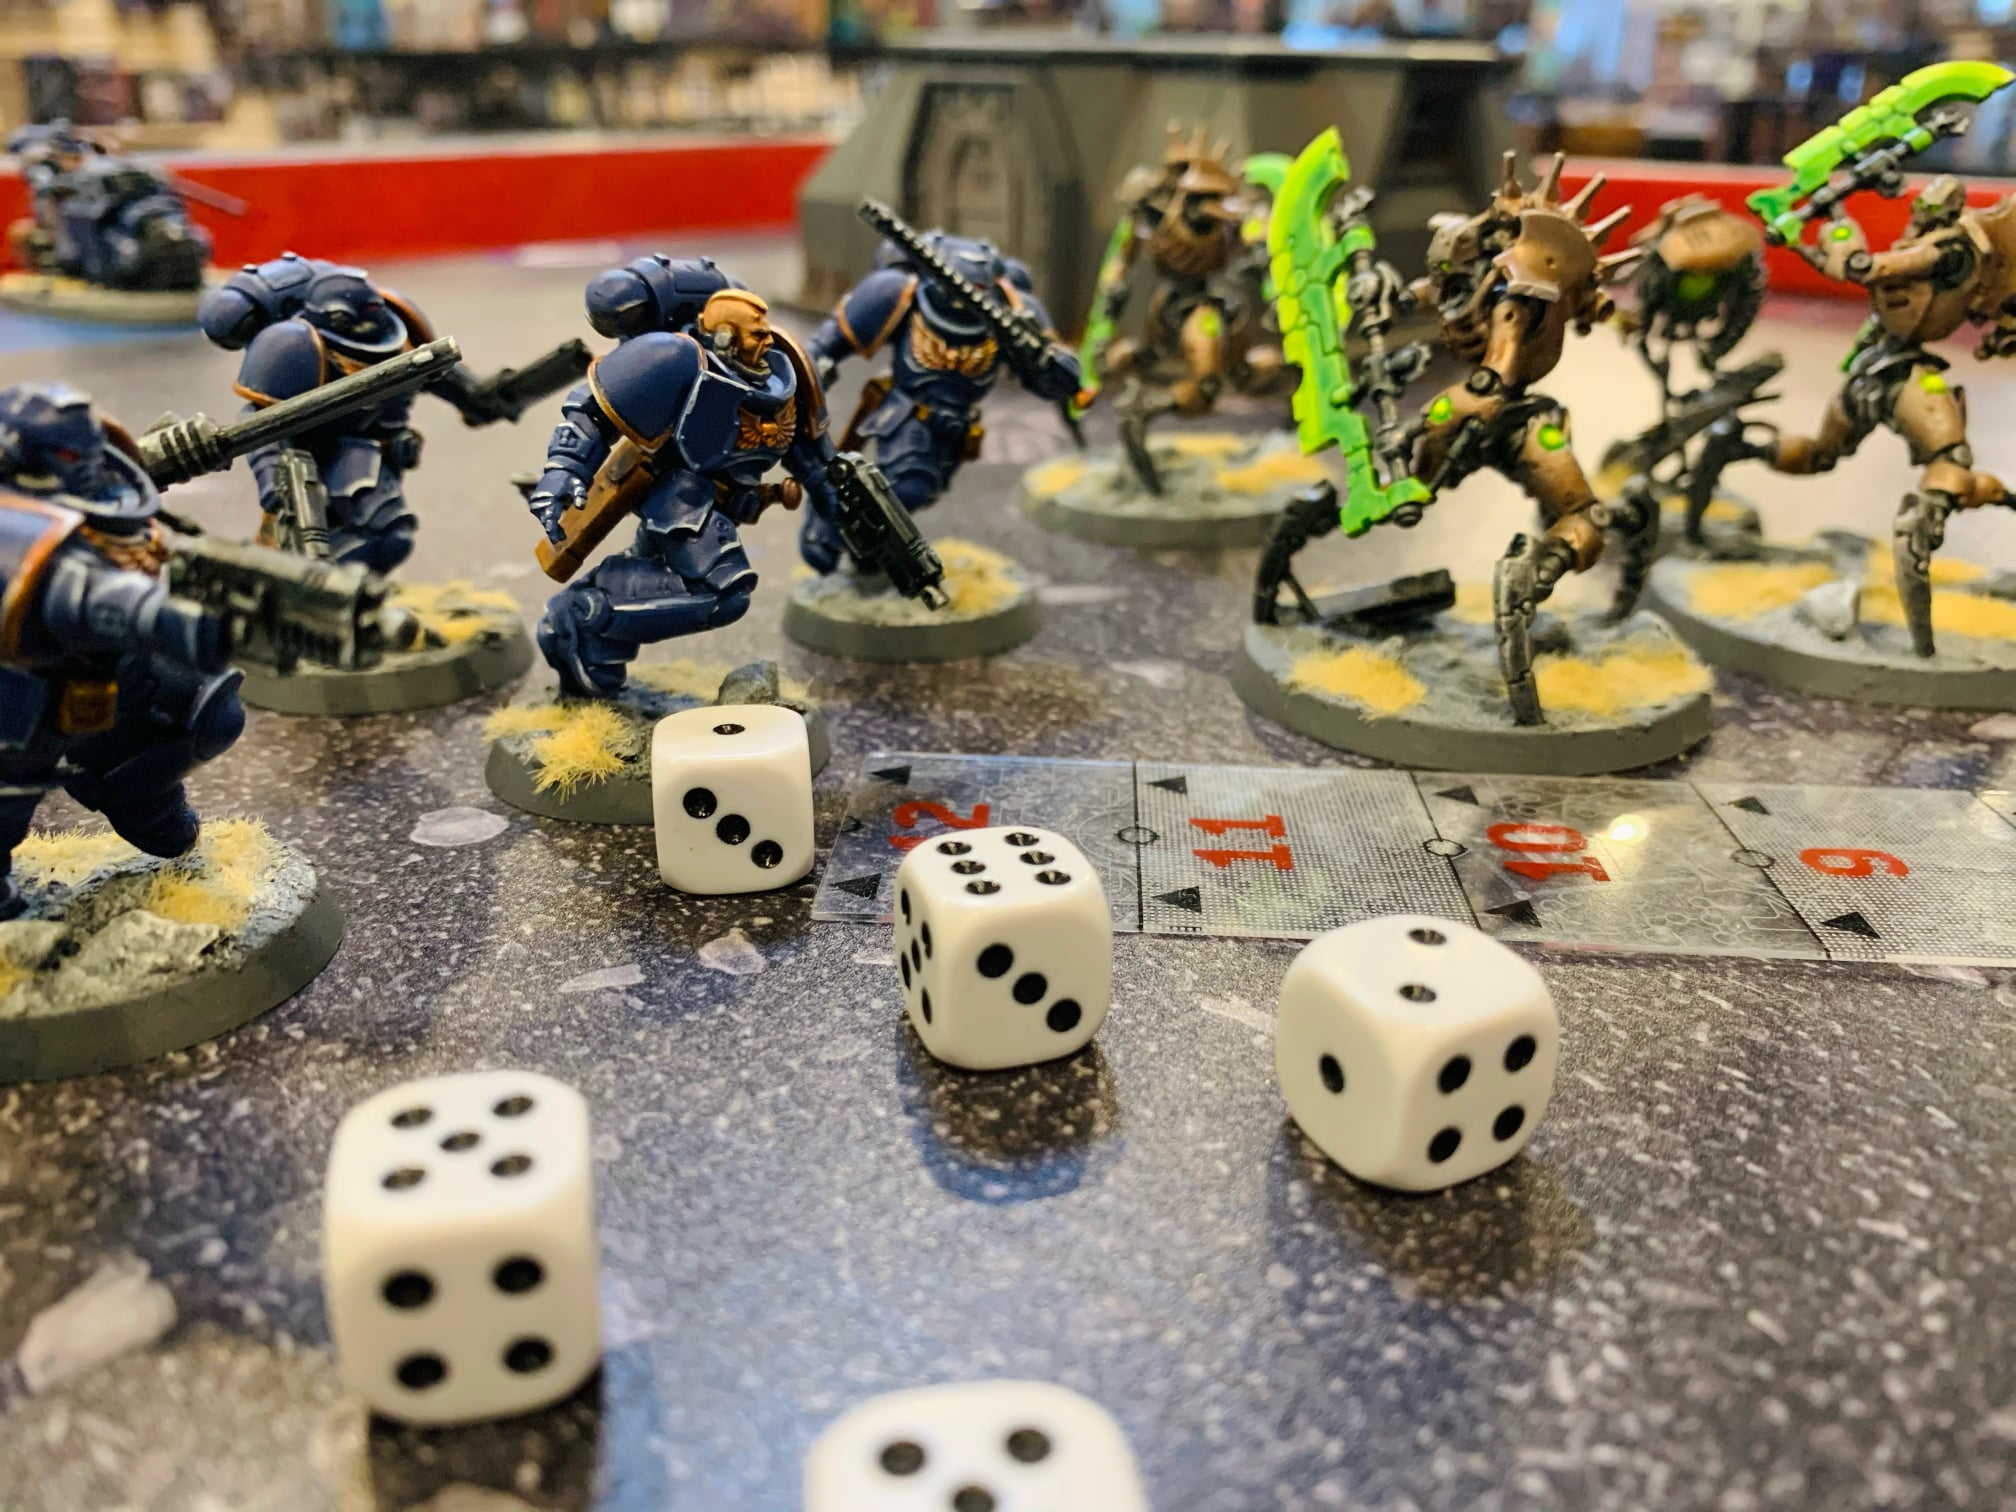 Dice and figures